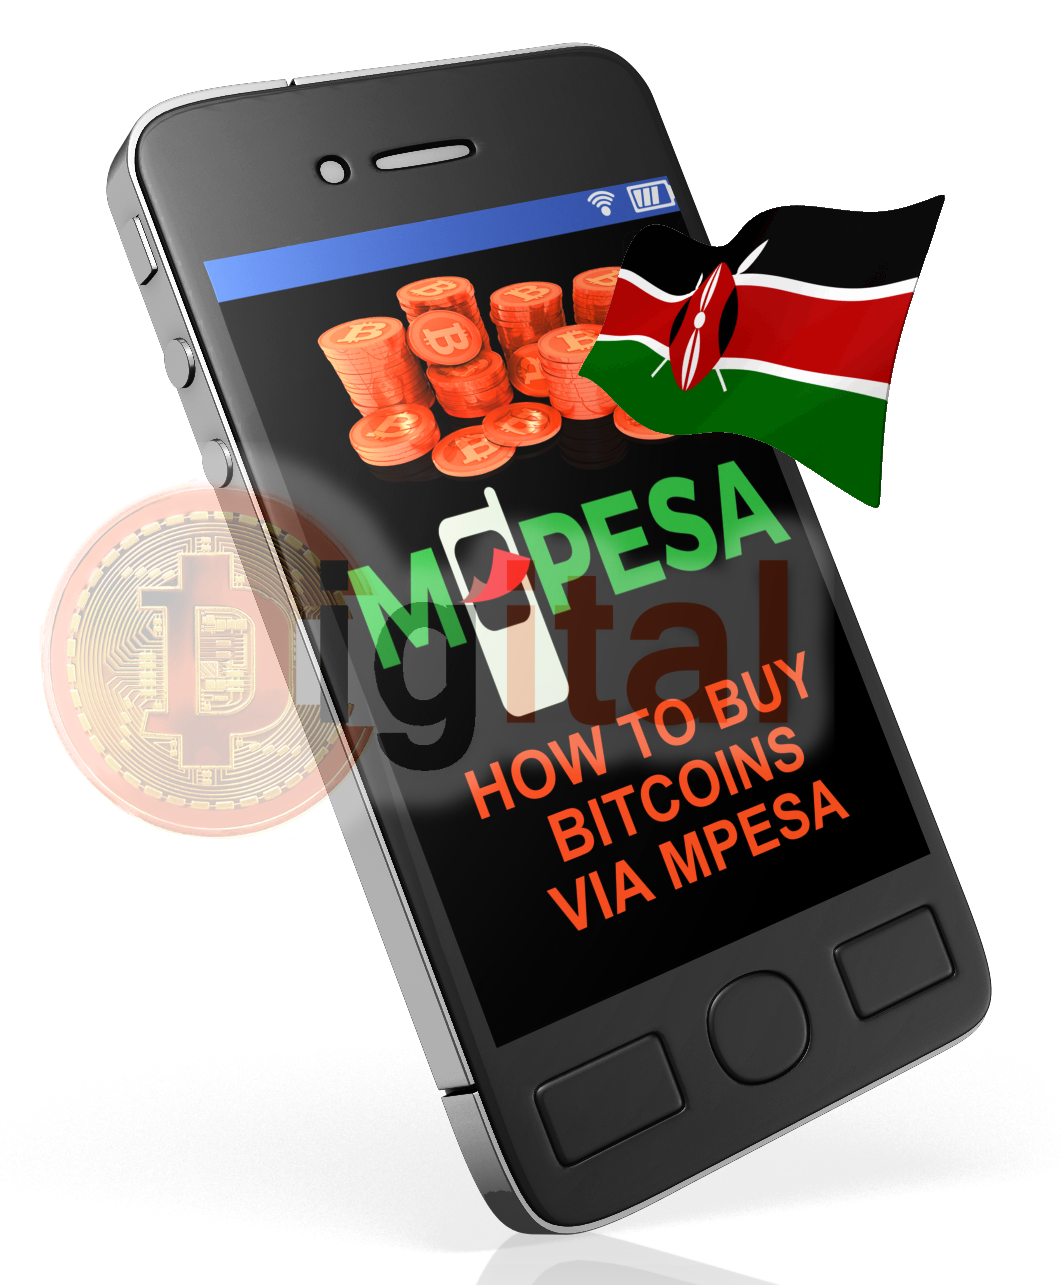 How to Buy Bitcoins with MPesa in Kenya